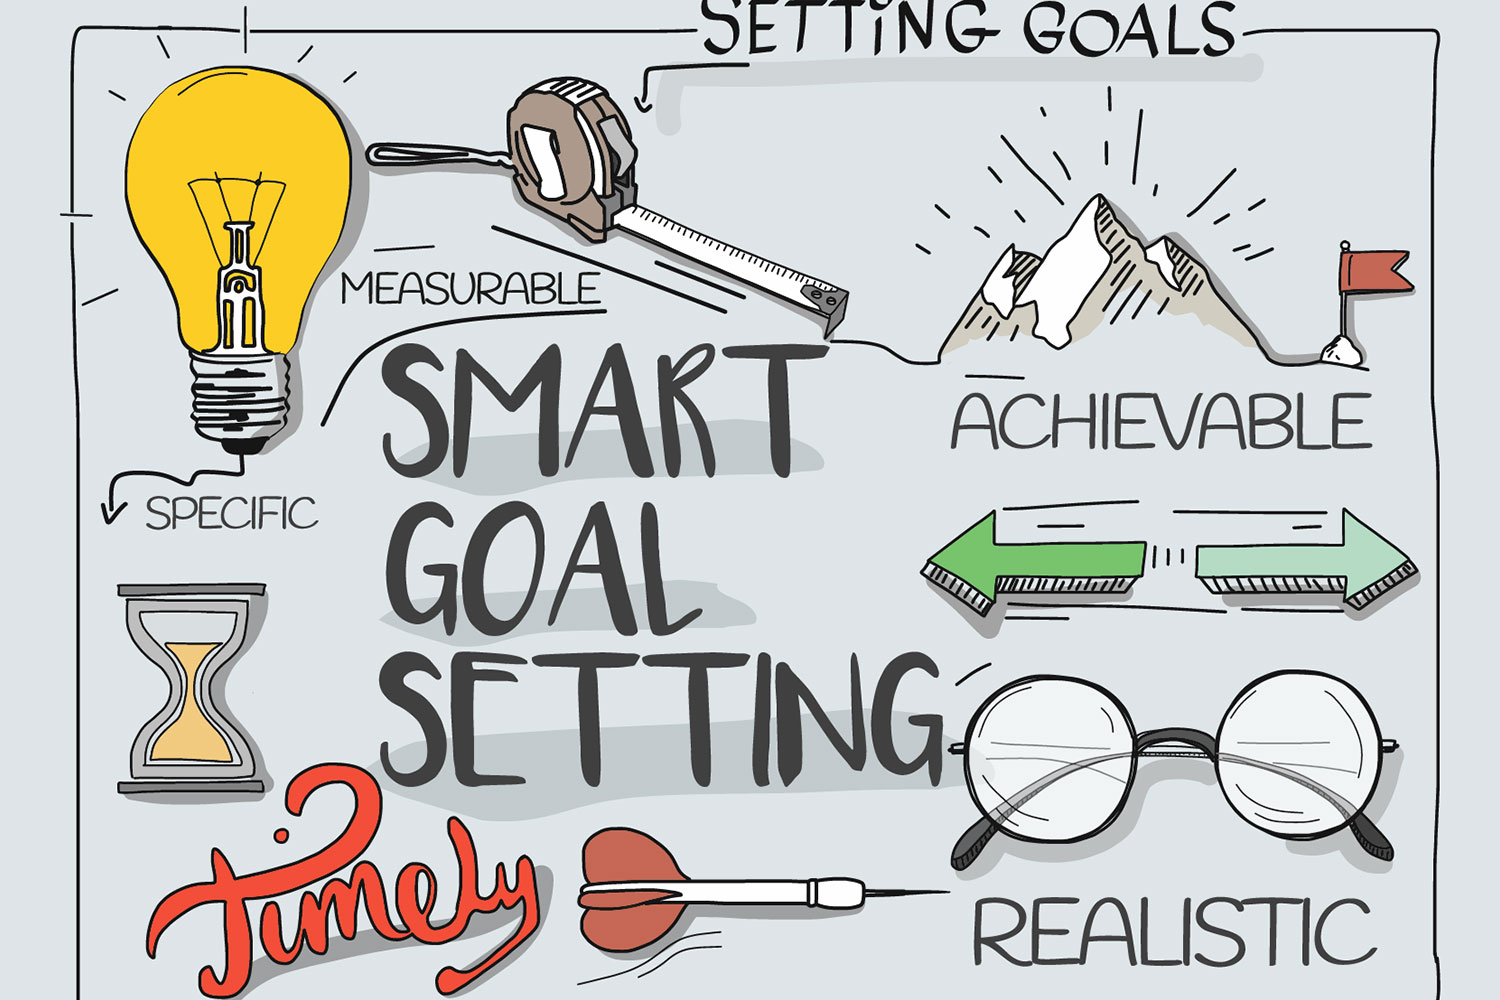 Set Your Goals the SMART Way!